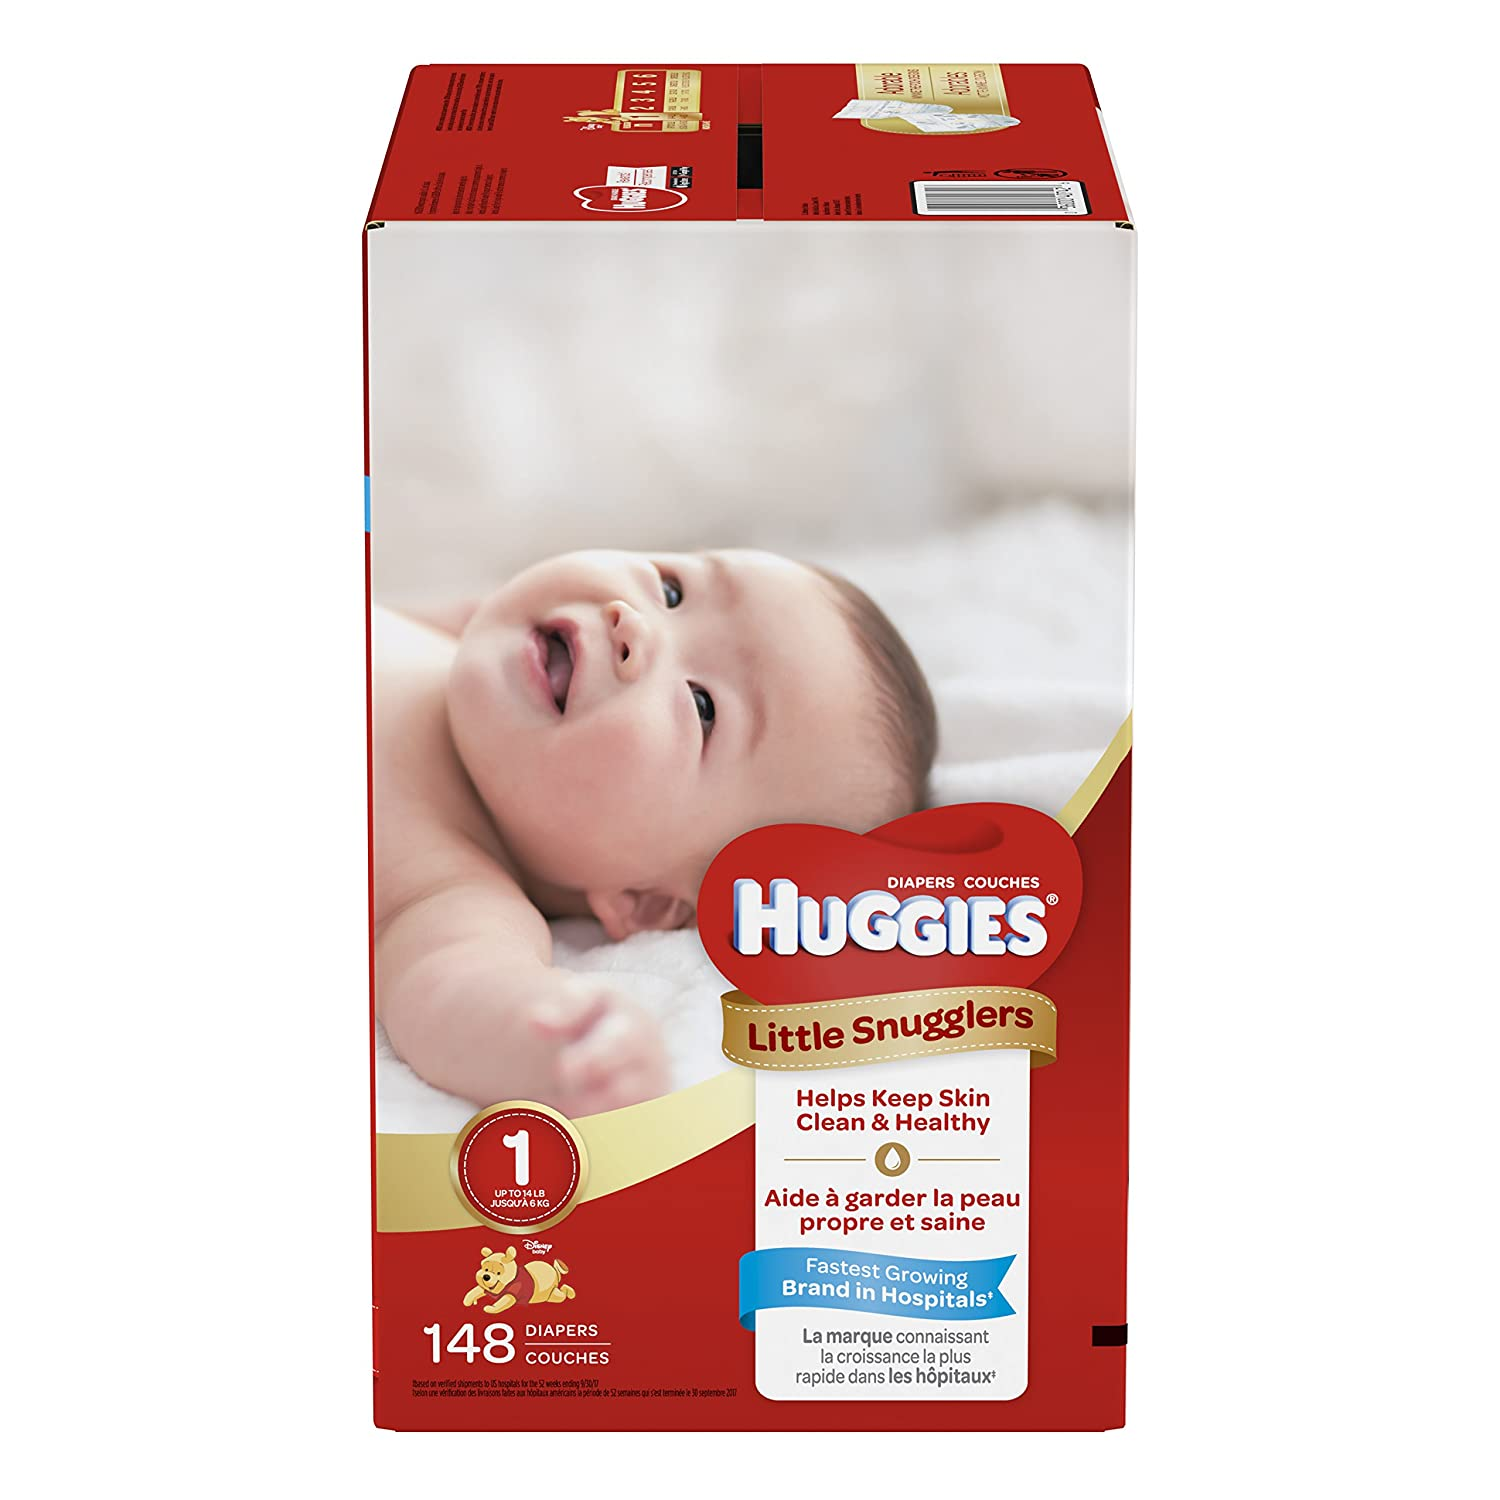 HUGGIES LITTLE SNUGGLERS, Baby Diapers, Size 4, 144ct Kimberly Clark 43418